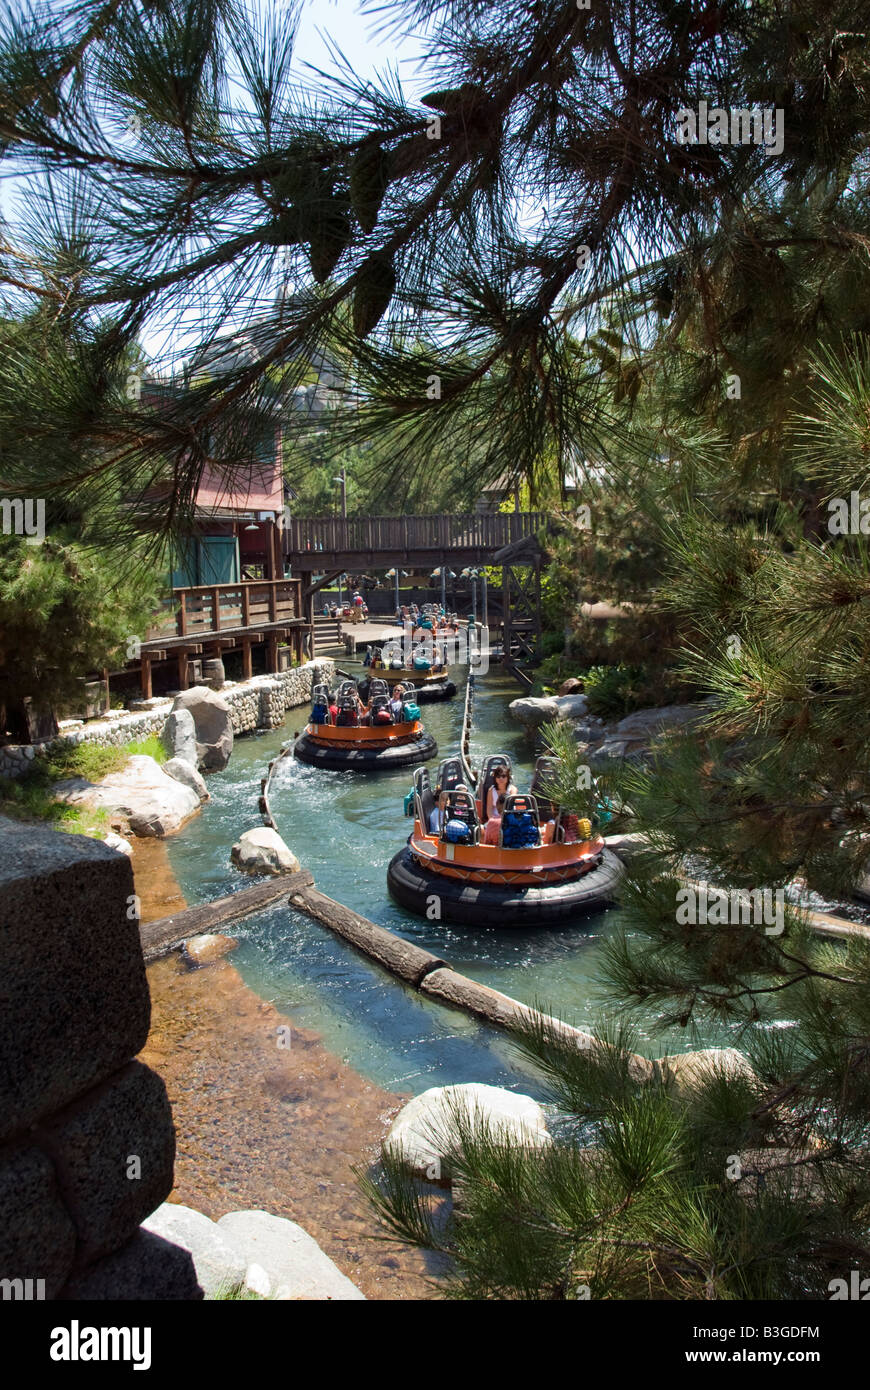 Disneyland Resort Anaheim California Entertainment Grizzly River